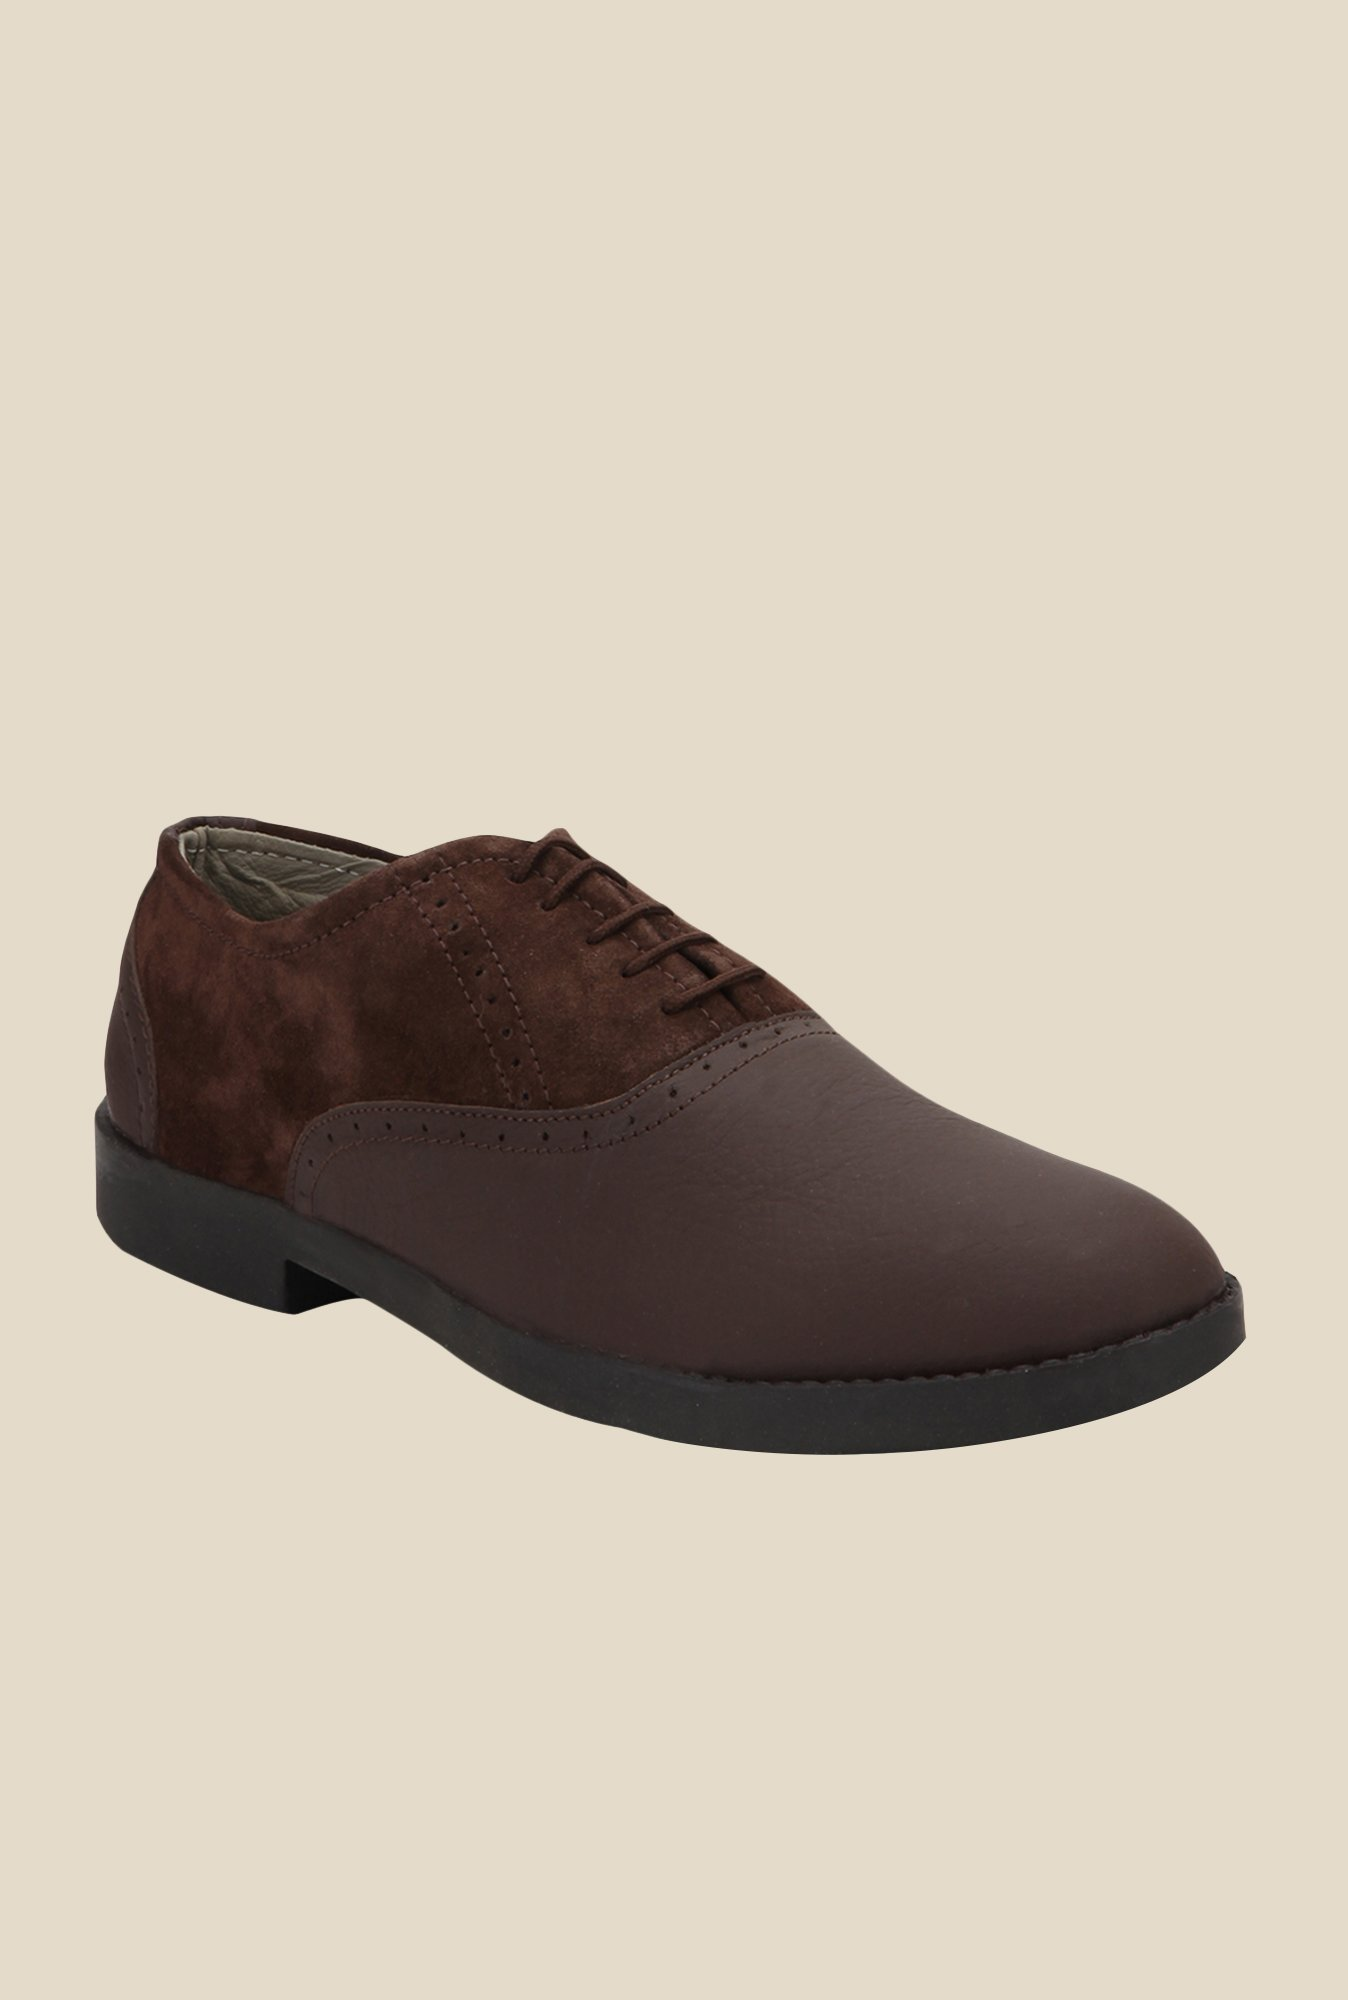 Yepme Brown Casual Shoes